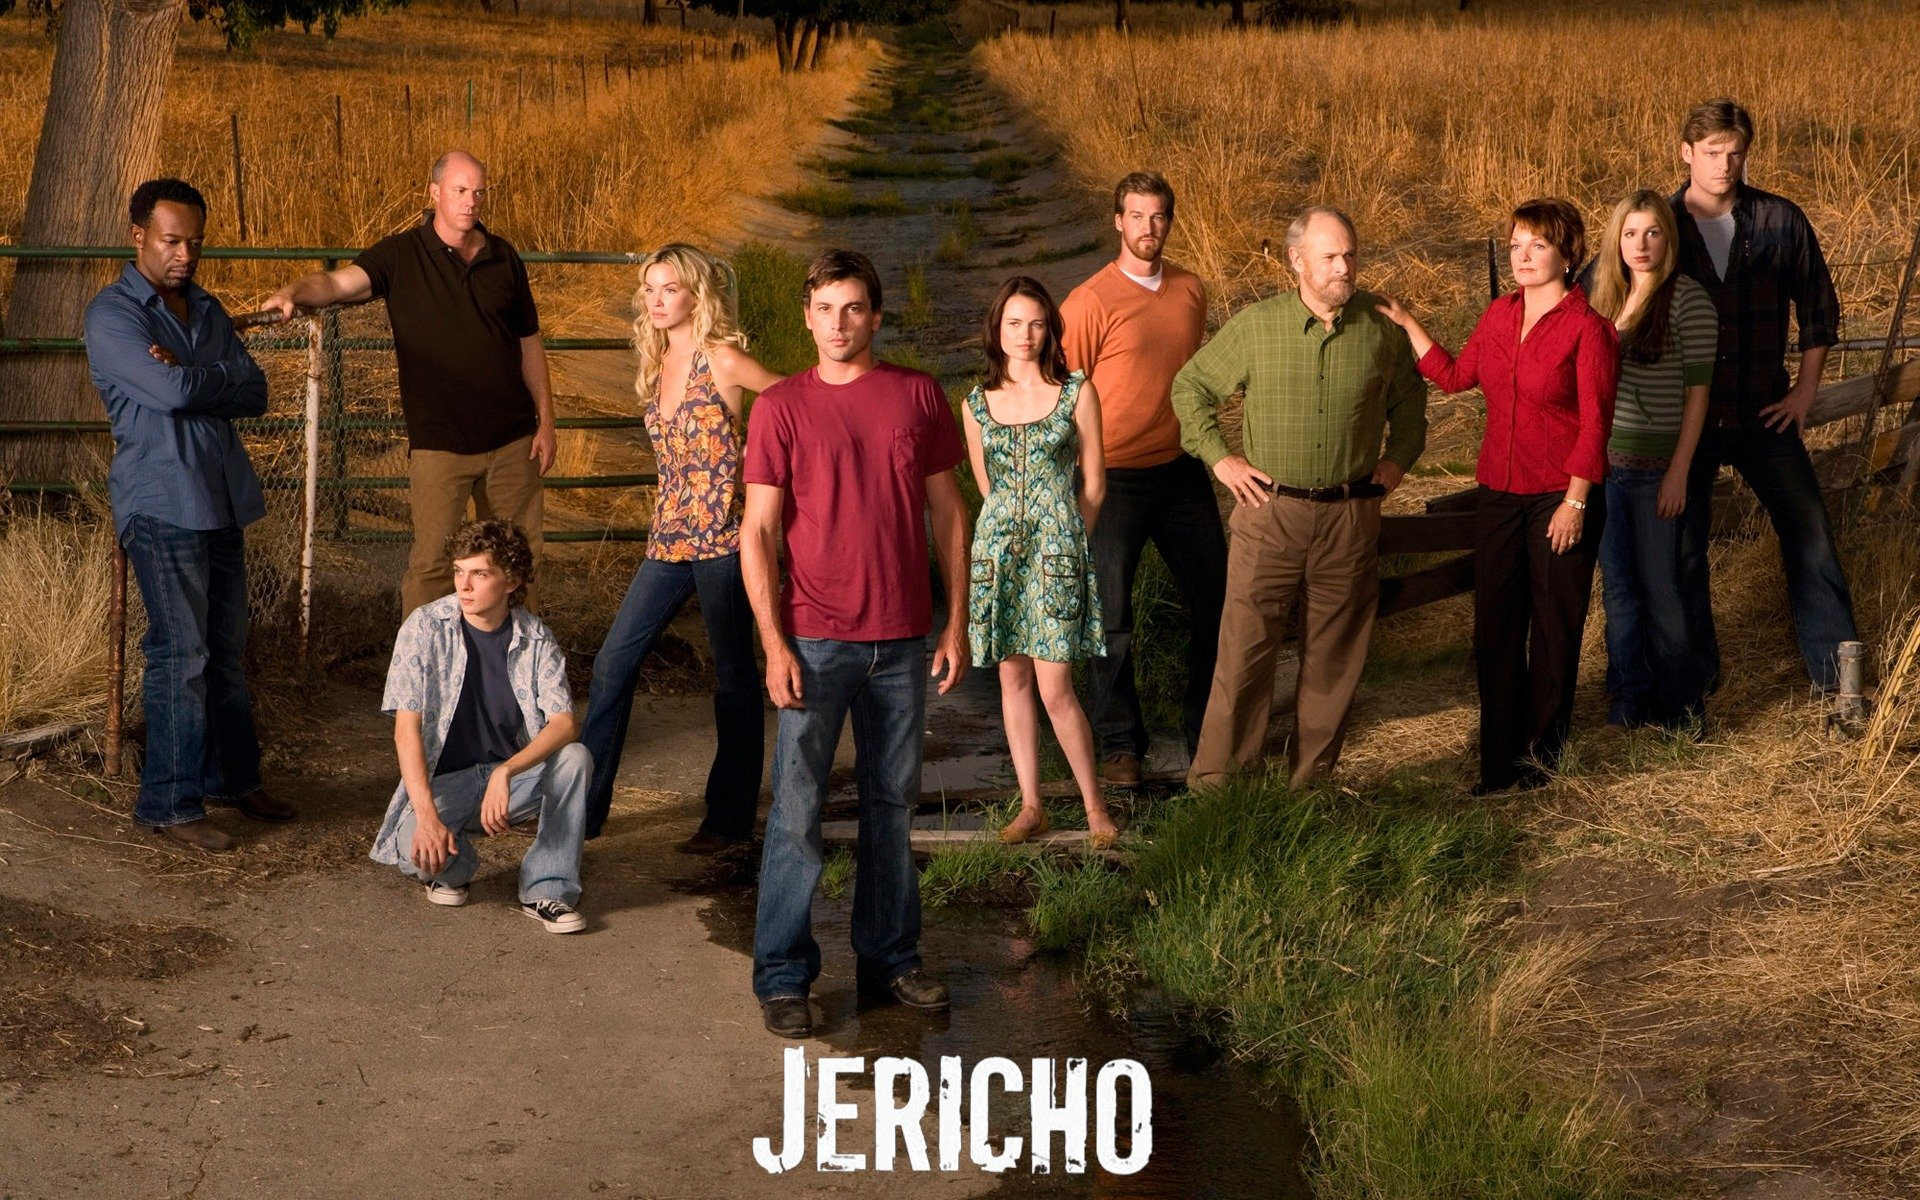 Jericho Wallpaper Jericho Movies Wallpapers in jpg format for 1920x1200